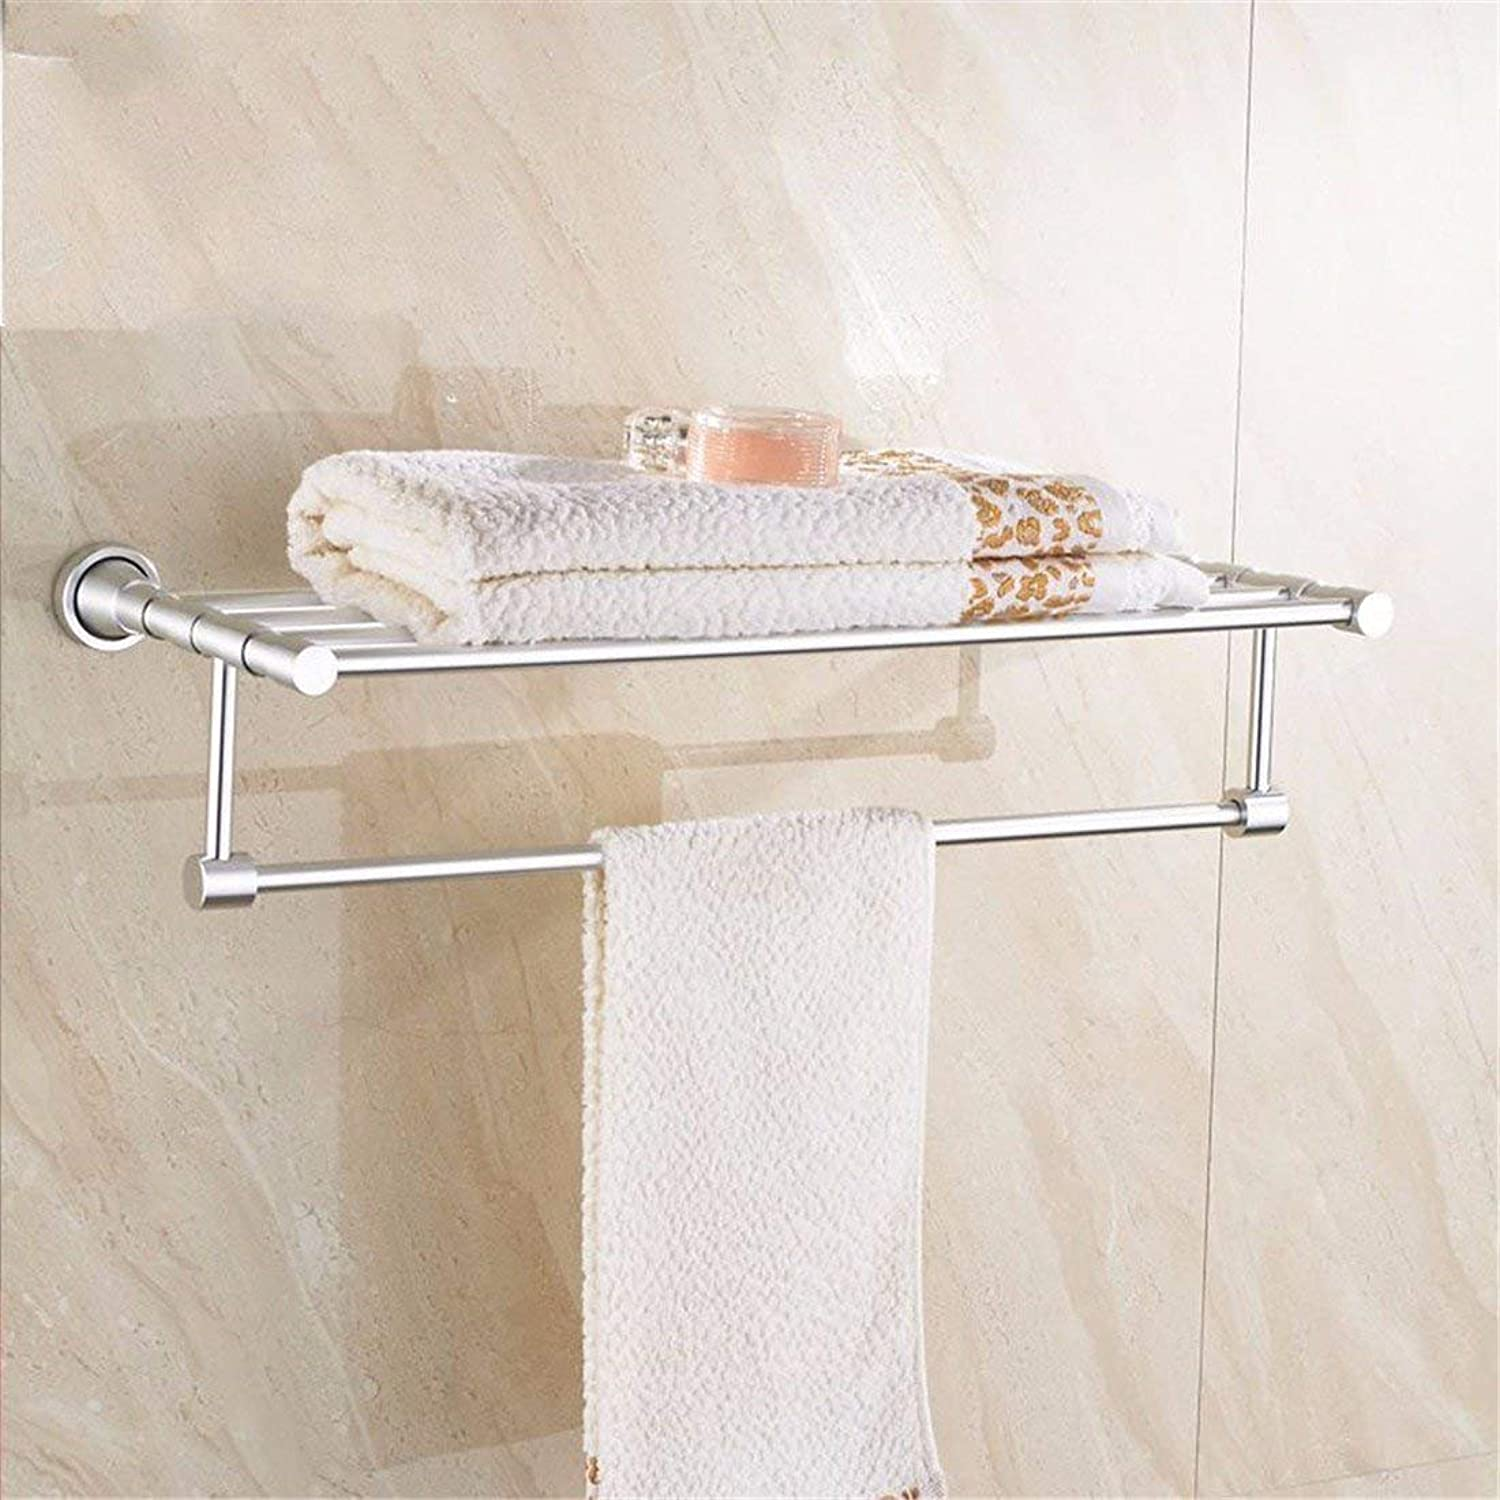 The Wire Contemporary Aluminum Dimensions, Bathroom, Box to soap, Toilet Paper, Towels Rack